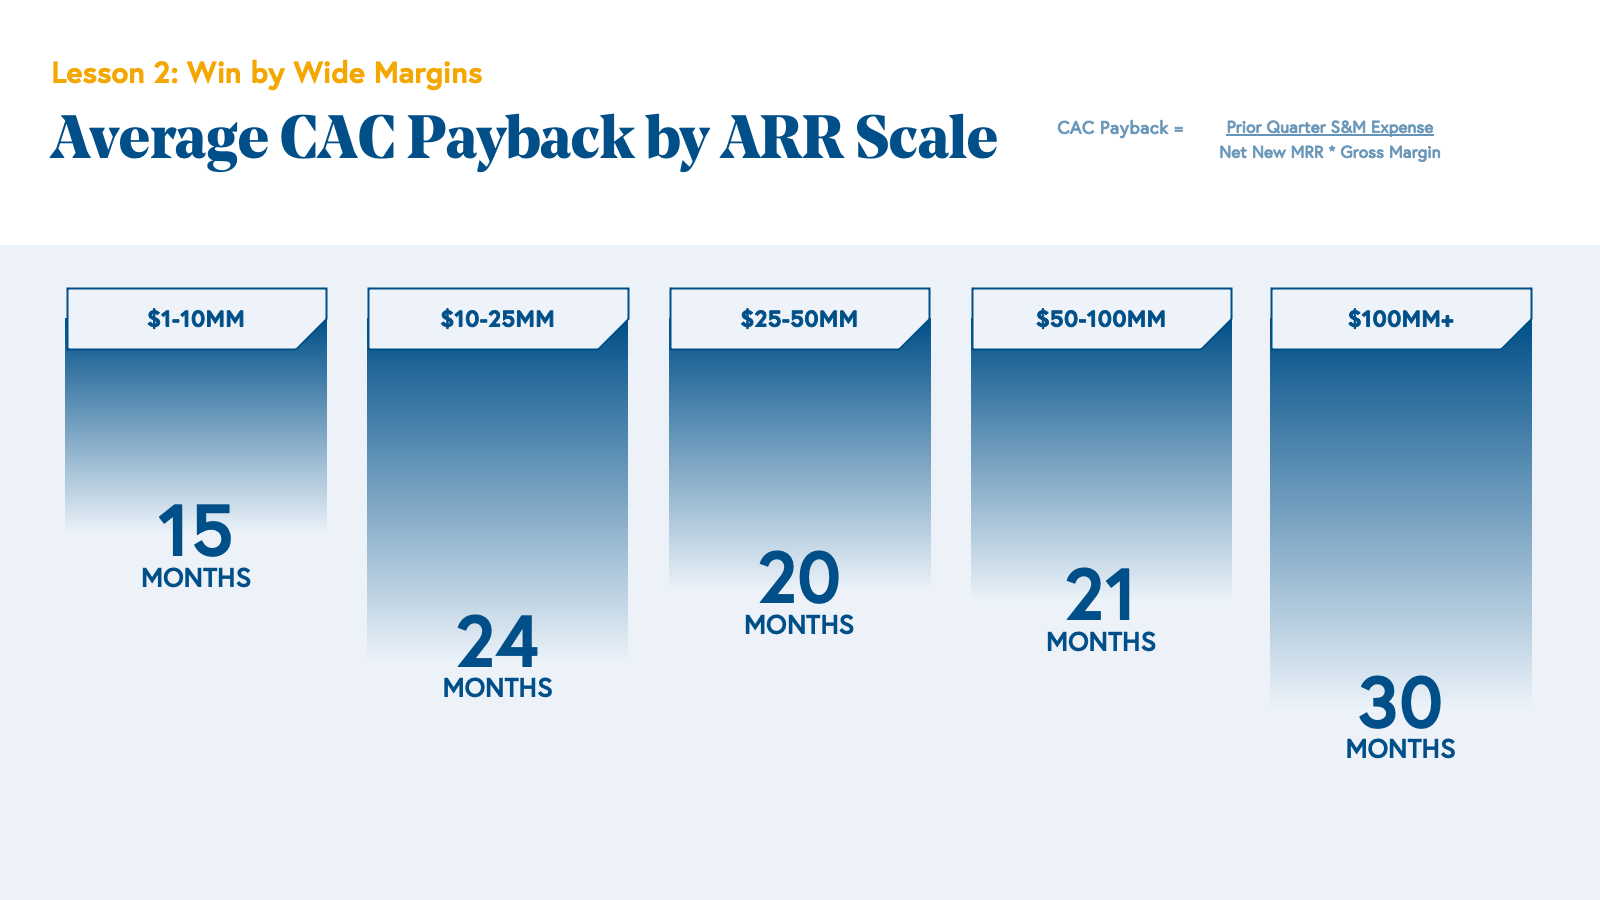 Average CAC Payback by ARR Scale Chart